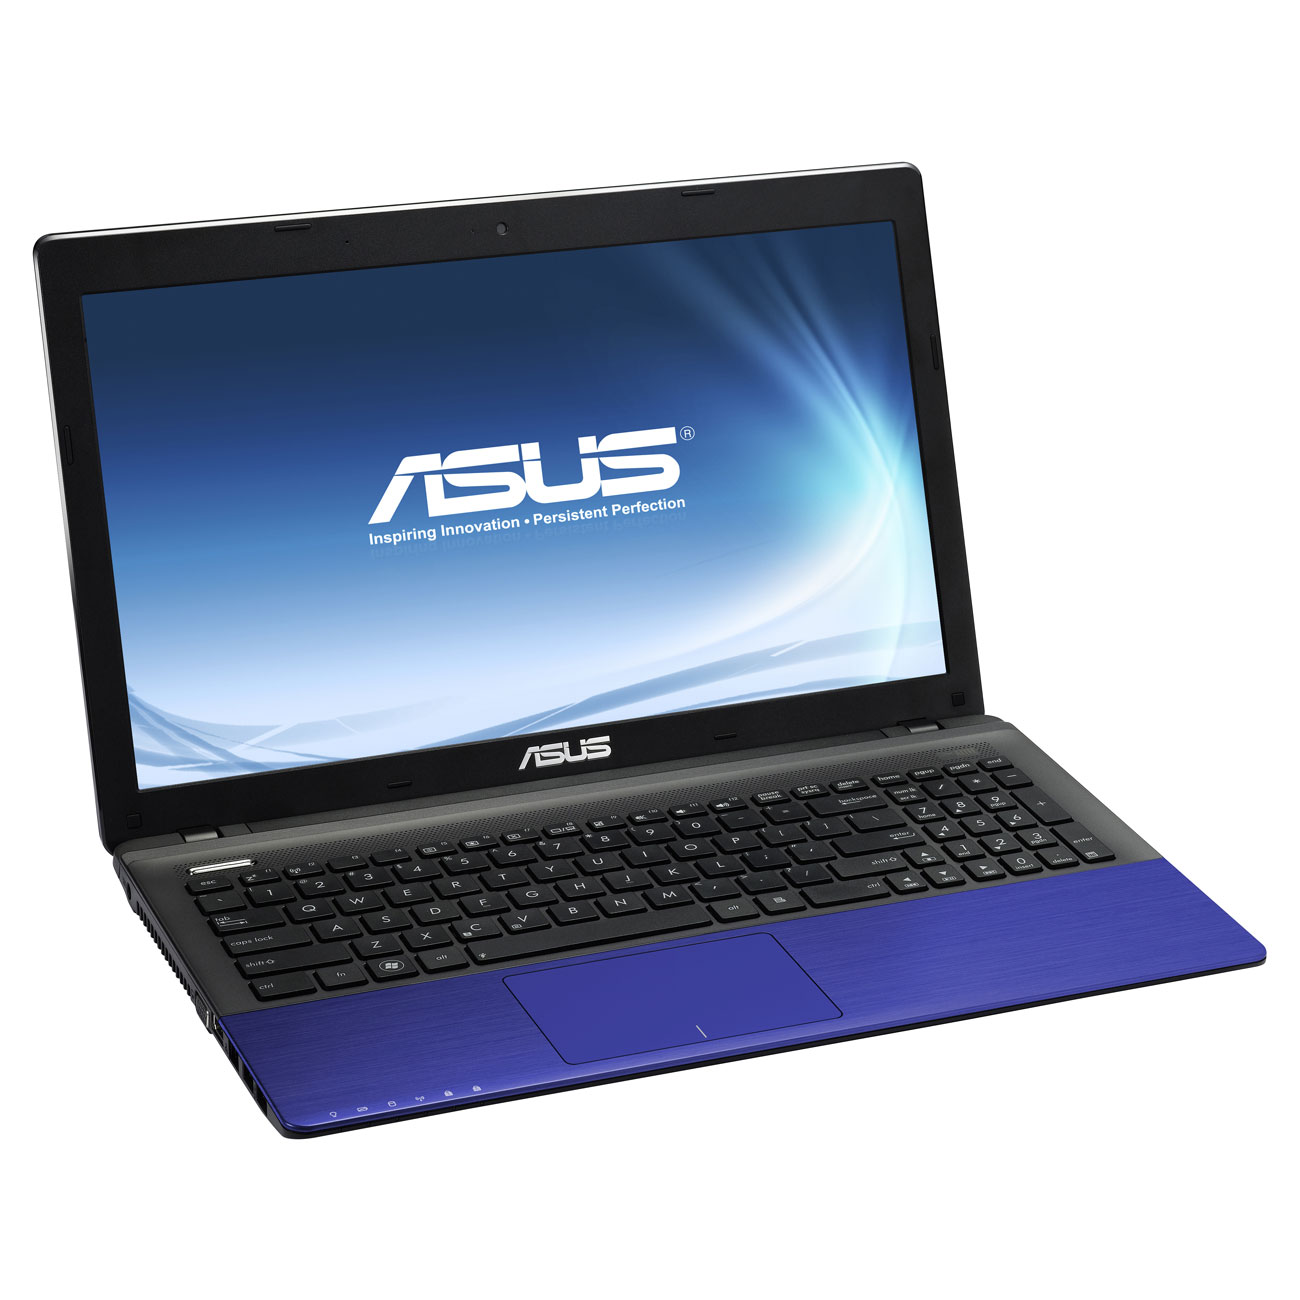 "PC portable ASUS K55VD-SX226H Bleu Intel Core i3-3110M 4 Go 750 Go 15.6"" LED NVIDIA GeForce GT 610M Graveur DVD Wi-Fi N/BT Webcam Windows 8 64 bits (garantie constructeur 2 ans)"